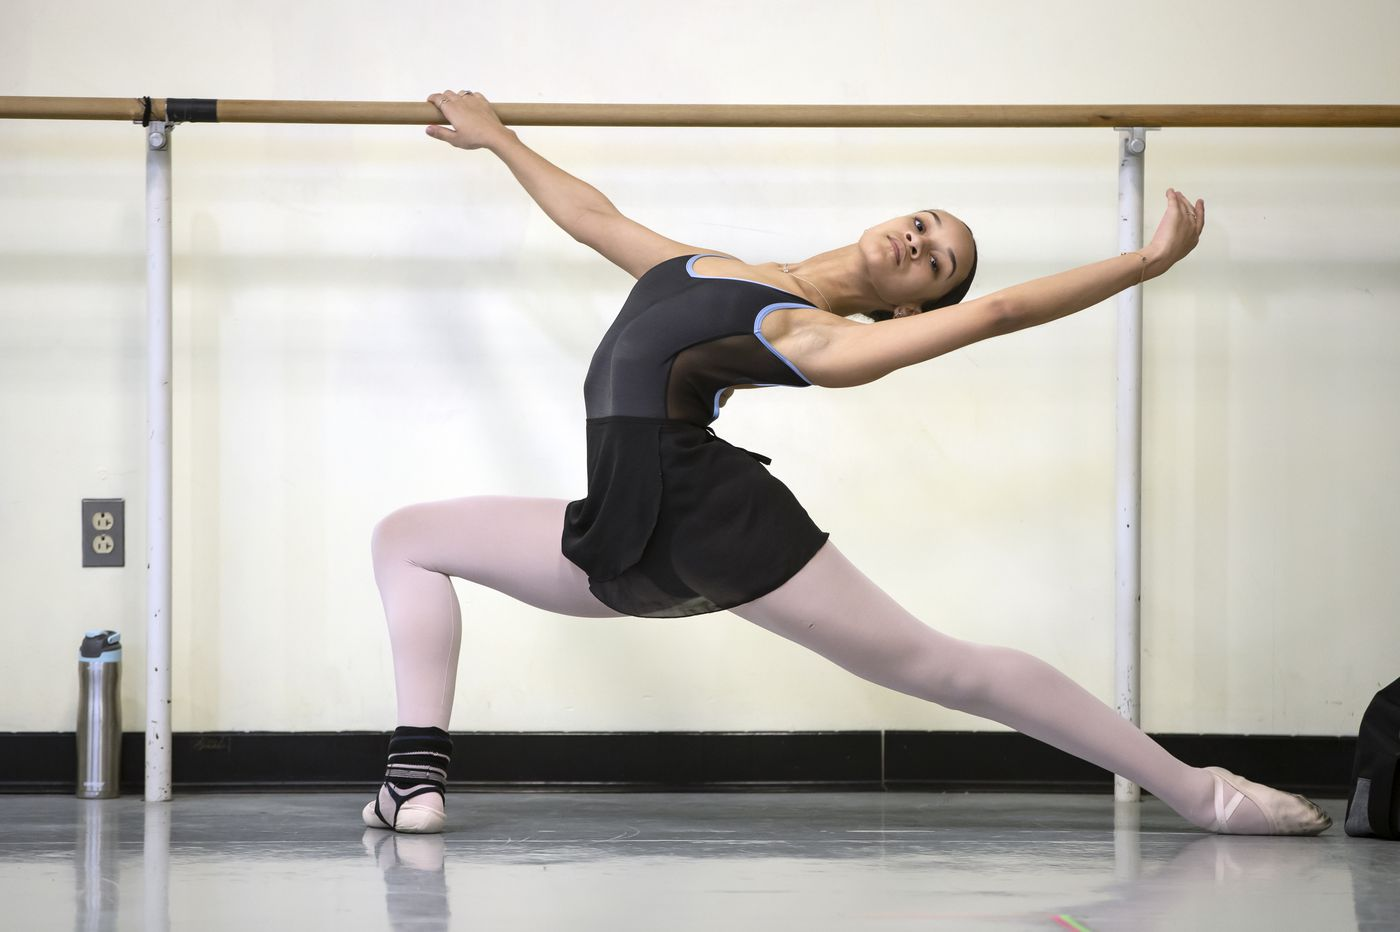 At Philly's Rock School, teenager Kaeli Ware is a rising star on the international ballet scene